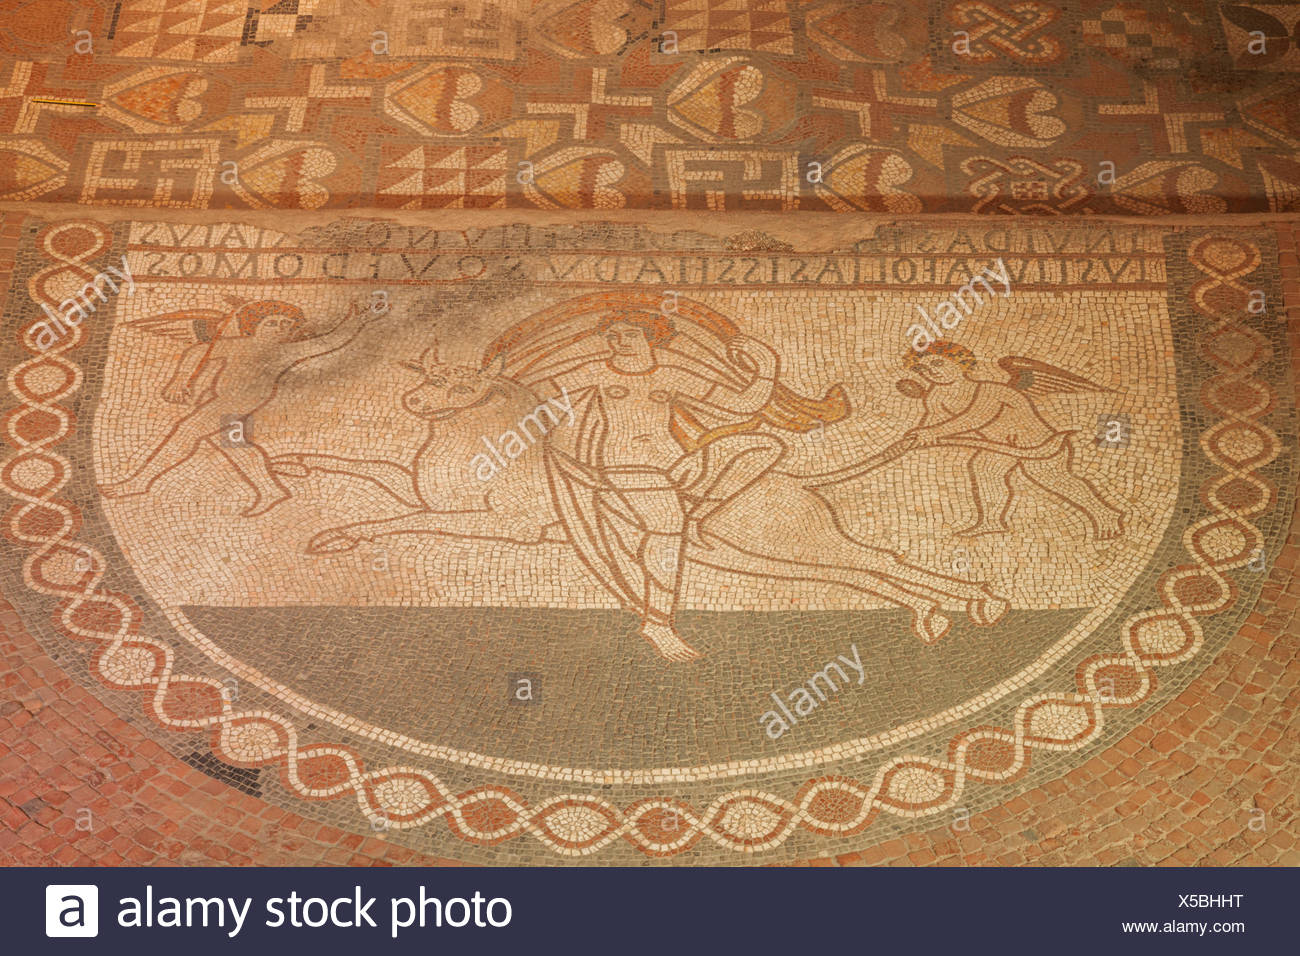 England, Kent, Lullingstone Roman Villa, Detail of Mosaic Flooring Showing The Roman God Jupiter Abducting Princess Europa while Disguised as a Bull - Stock Image